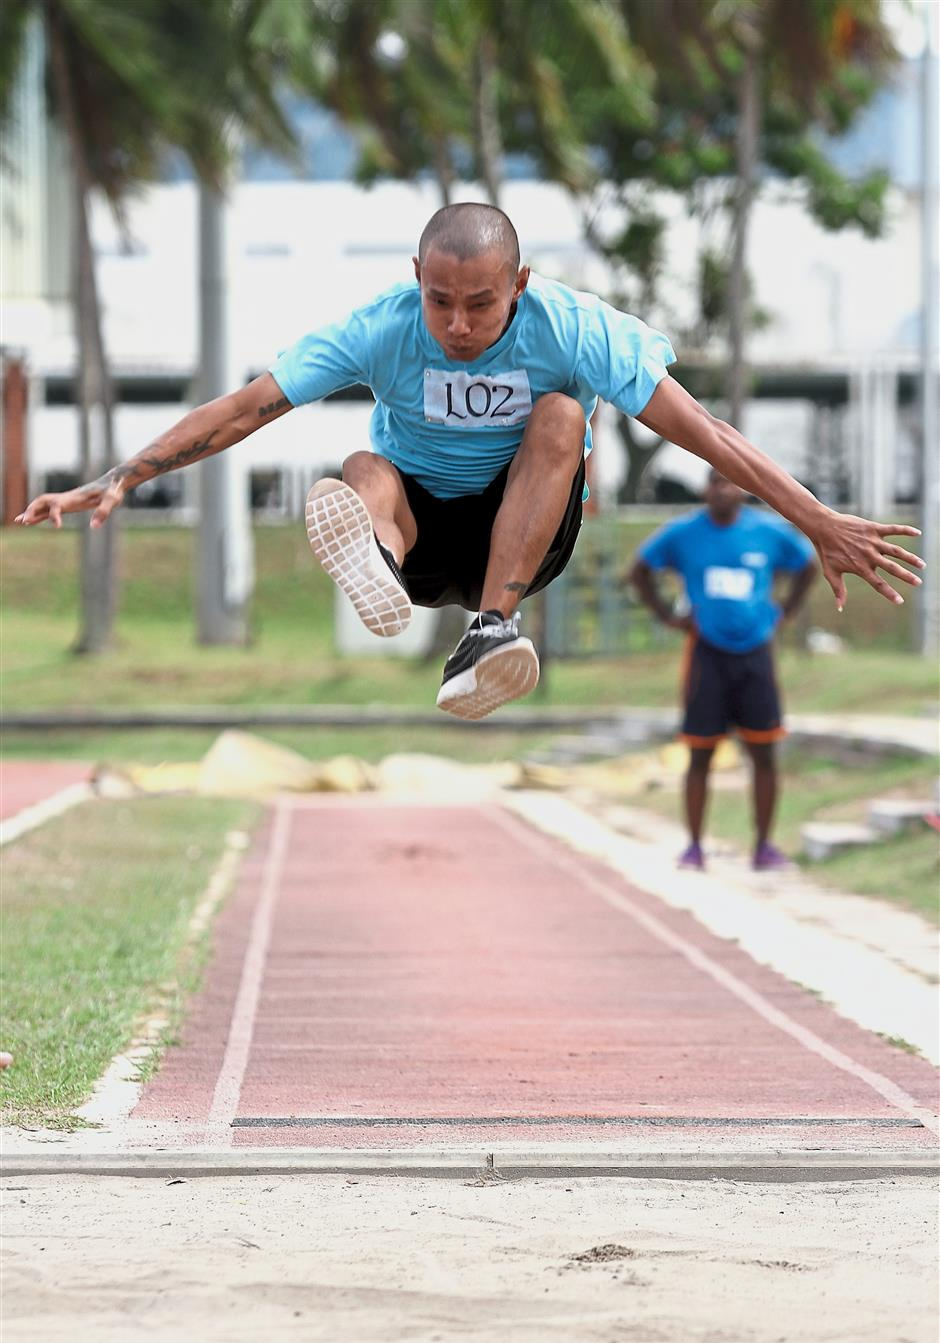 A participant soars as he attempts the long jump.